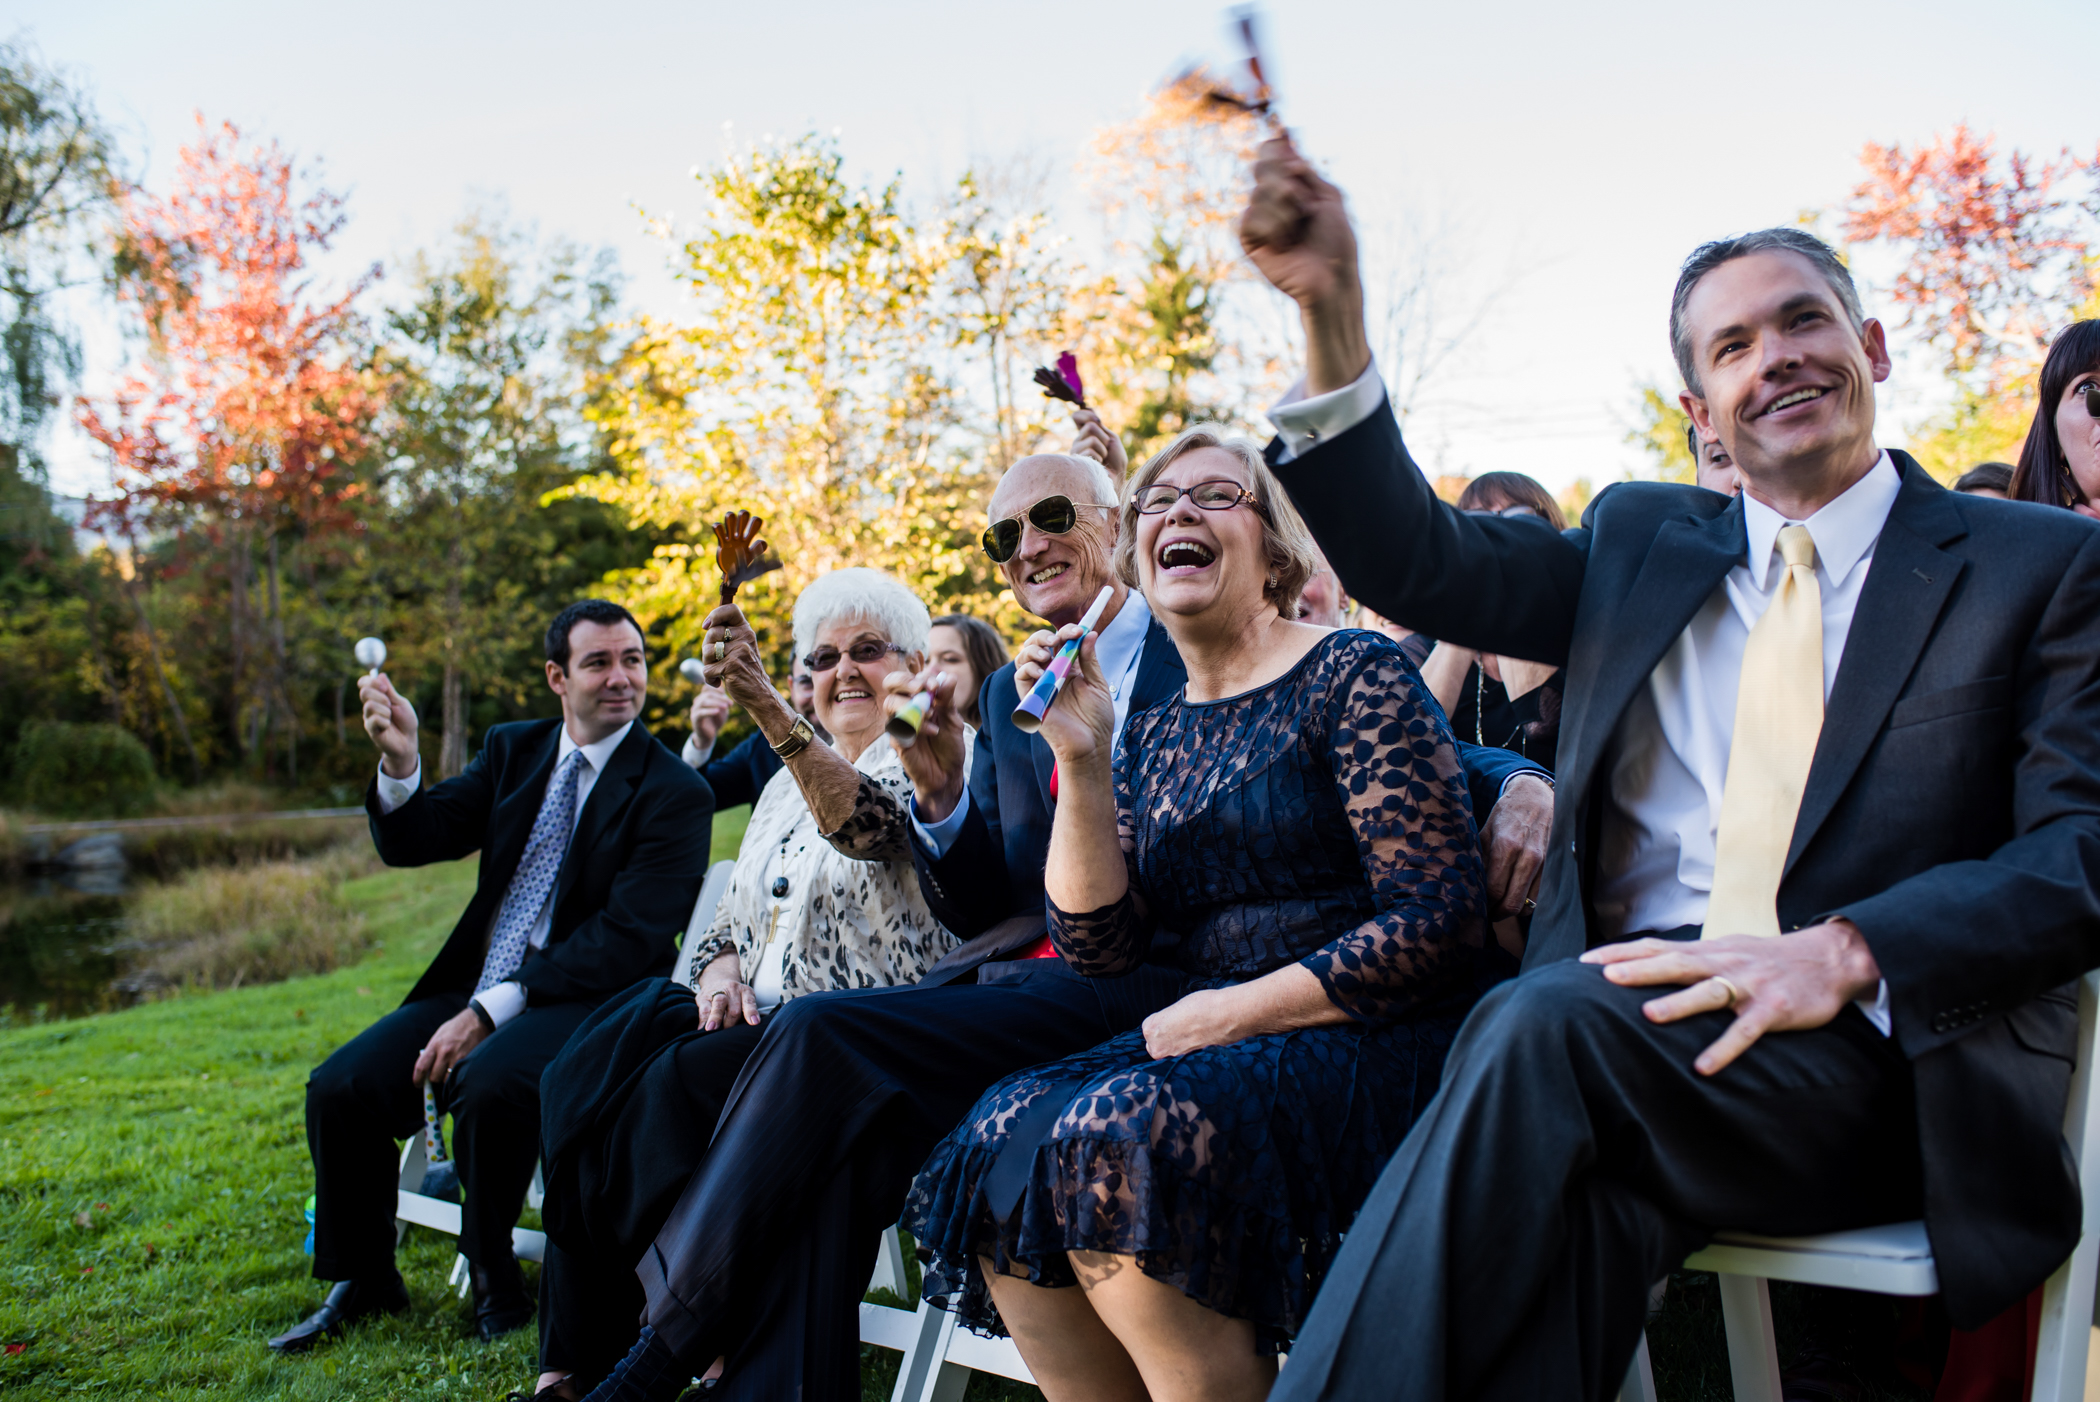 Stefy Hilmer Photography -guests applauding cheerign on wedding couple.jpg